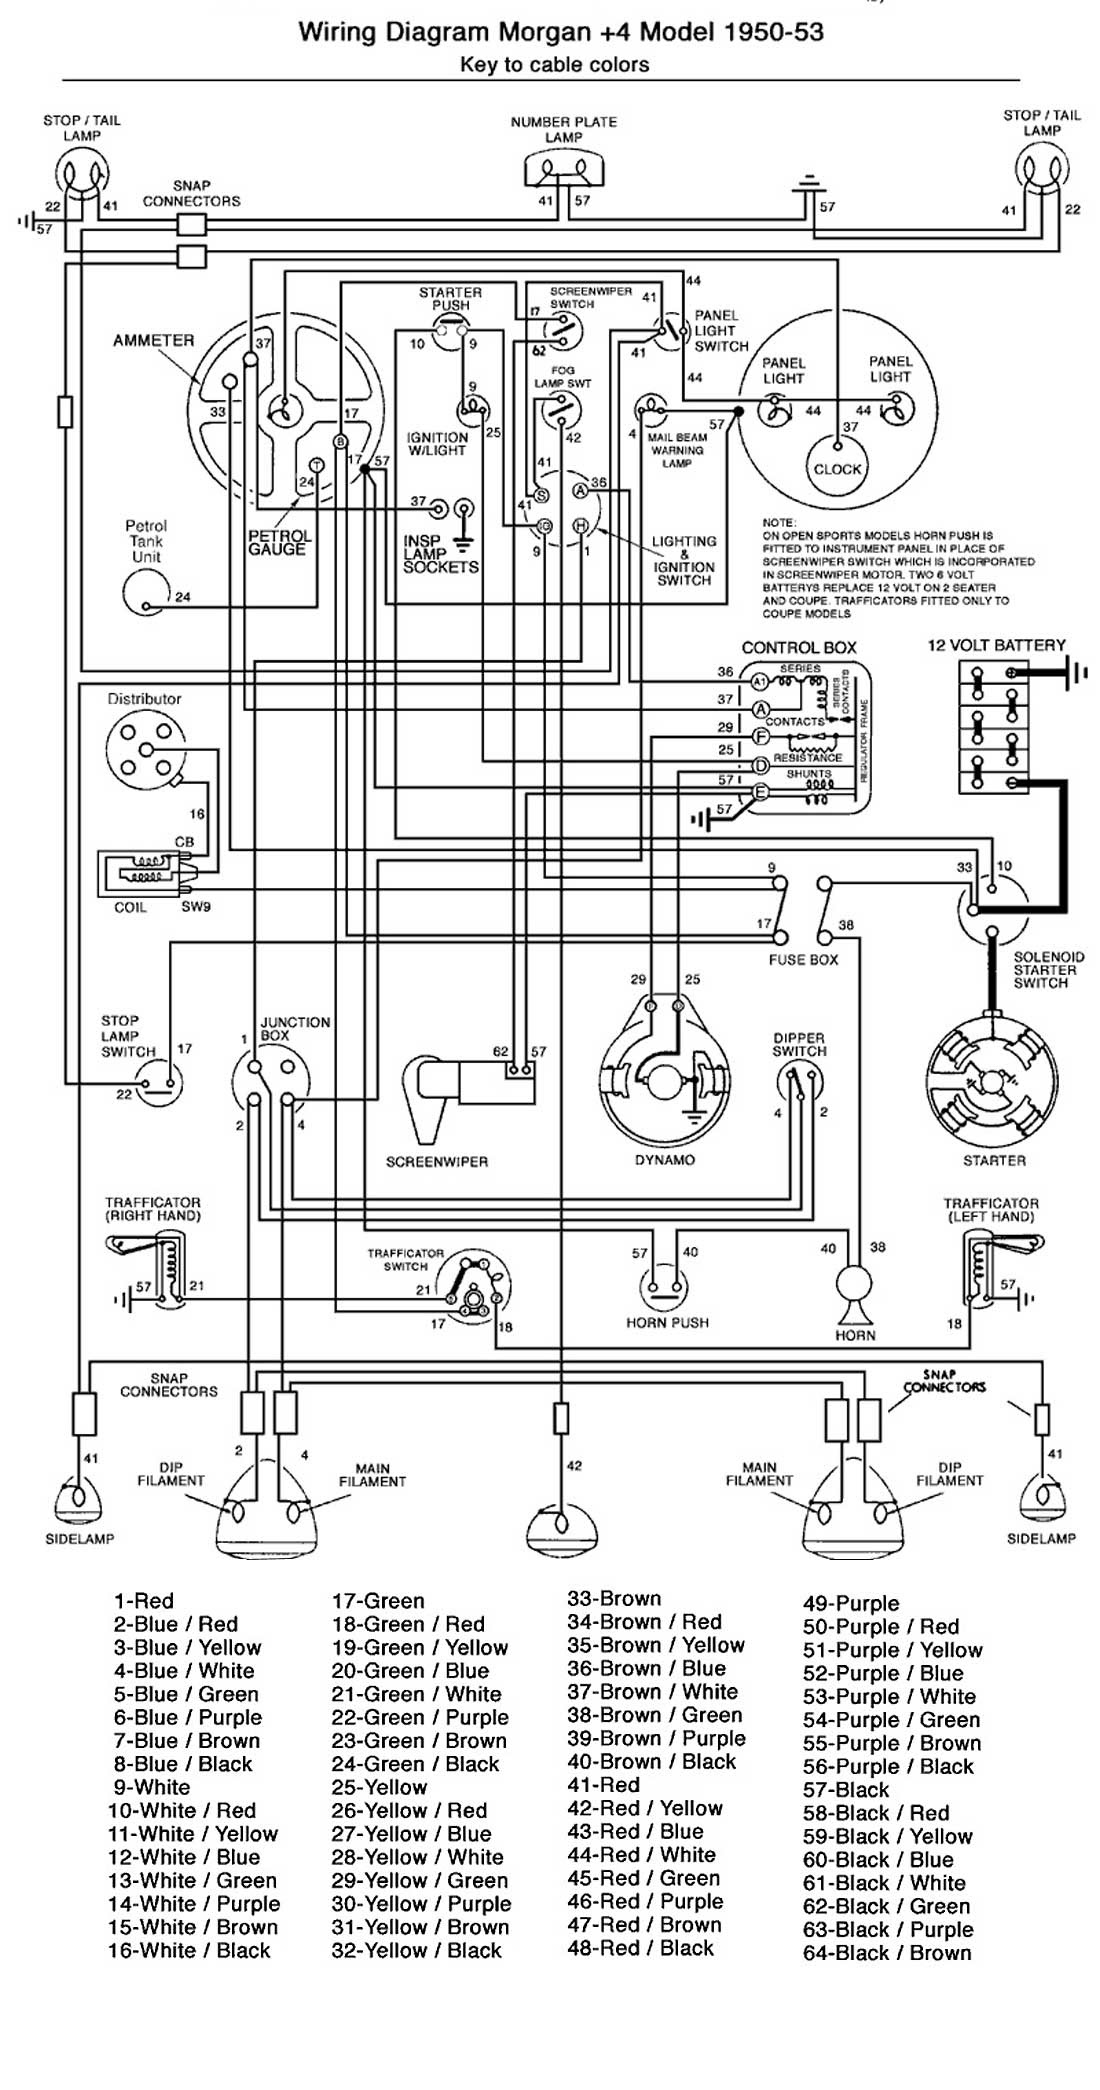 Diagram 1985 Morgan Wiring Diagram Full Version Hd Quality Wiring Diagram Diagramsolden Unbroken Ilfilm It